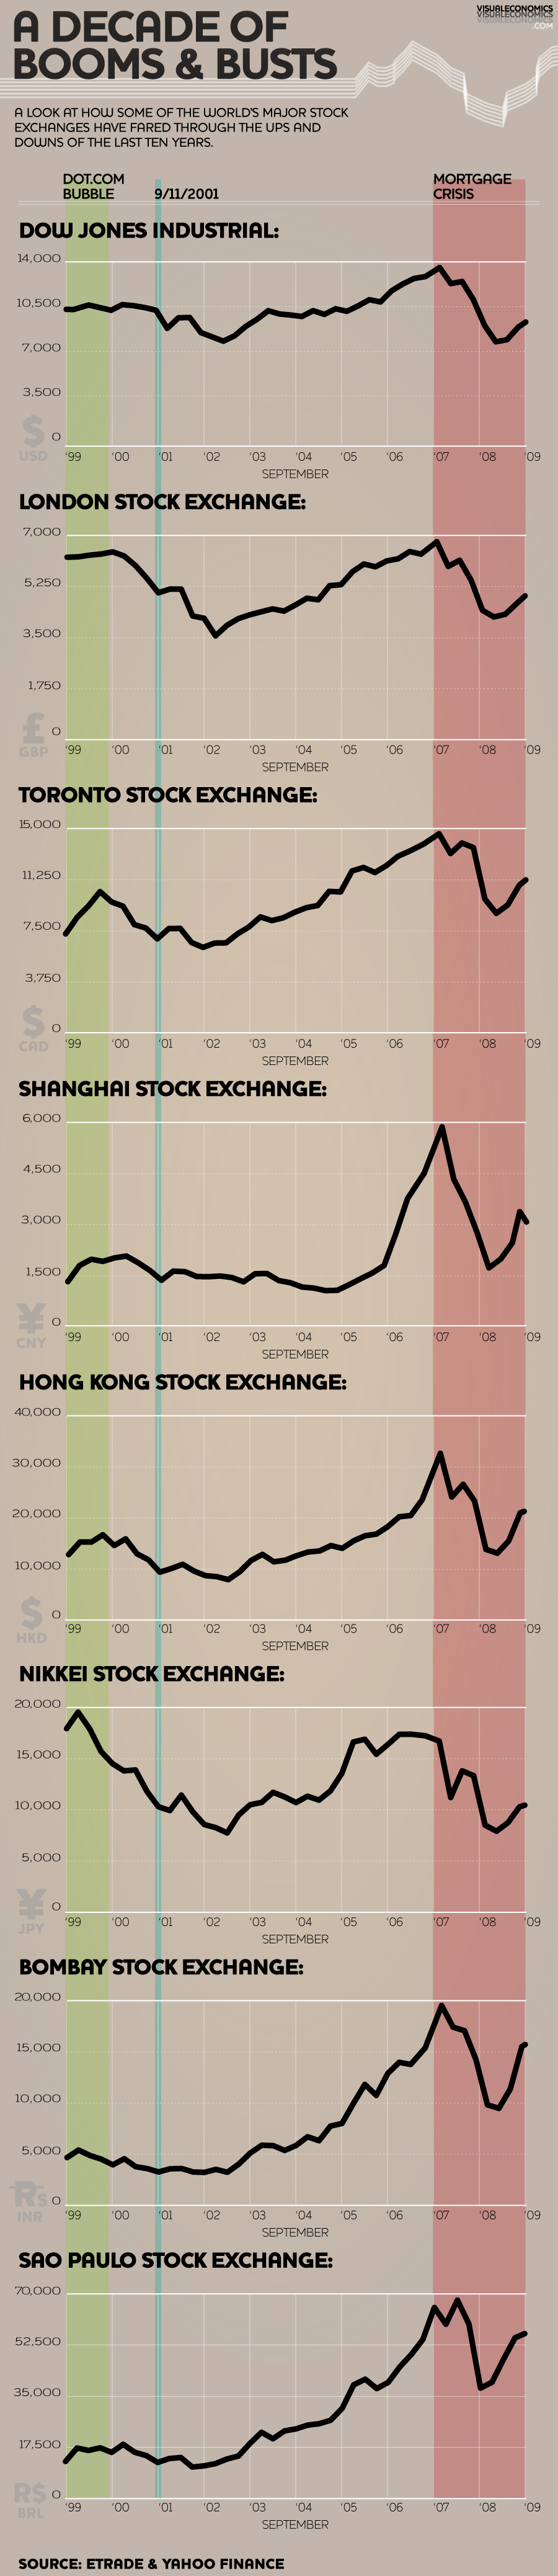 Ups and downs of stock exchanges around the world for the past 10 years